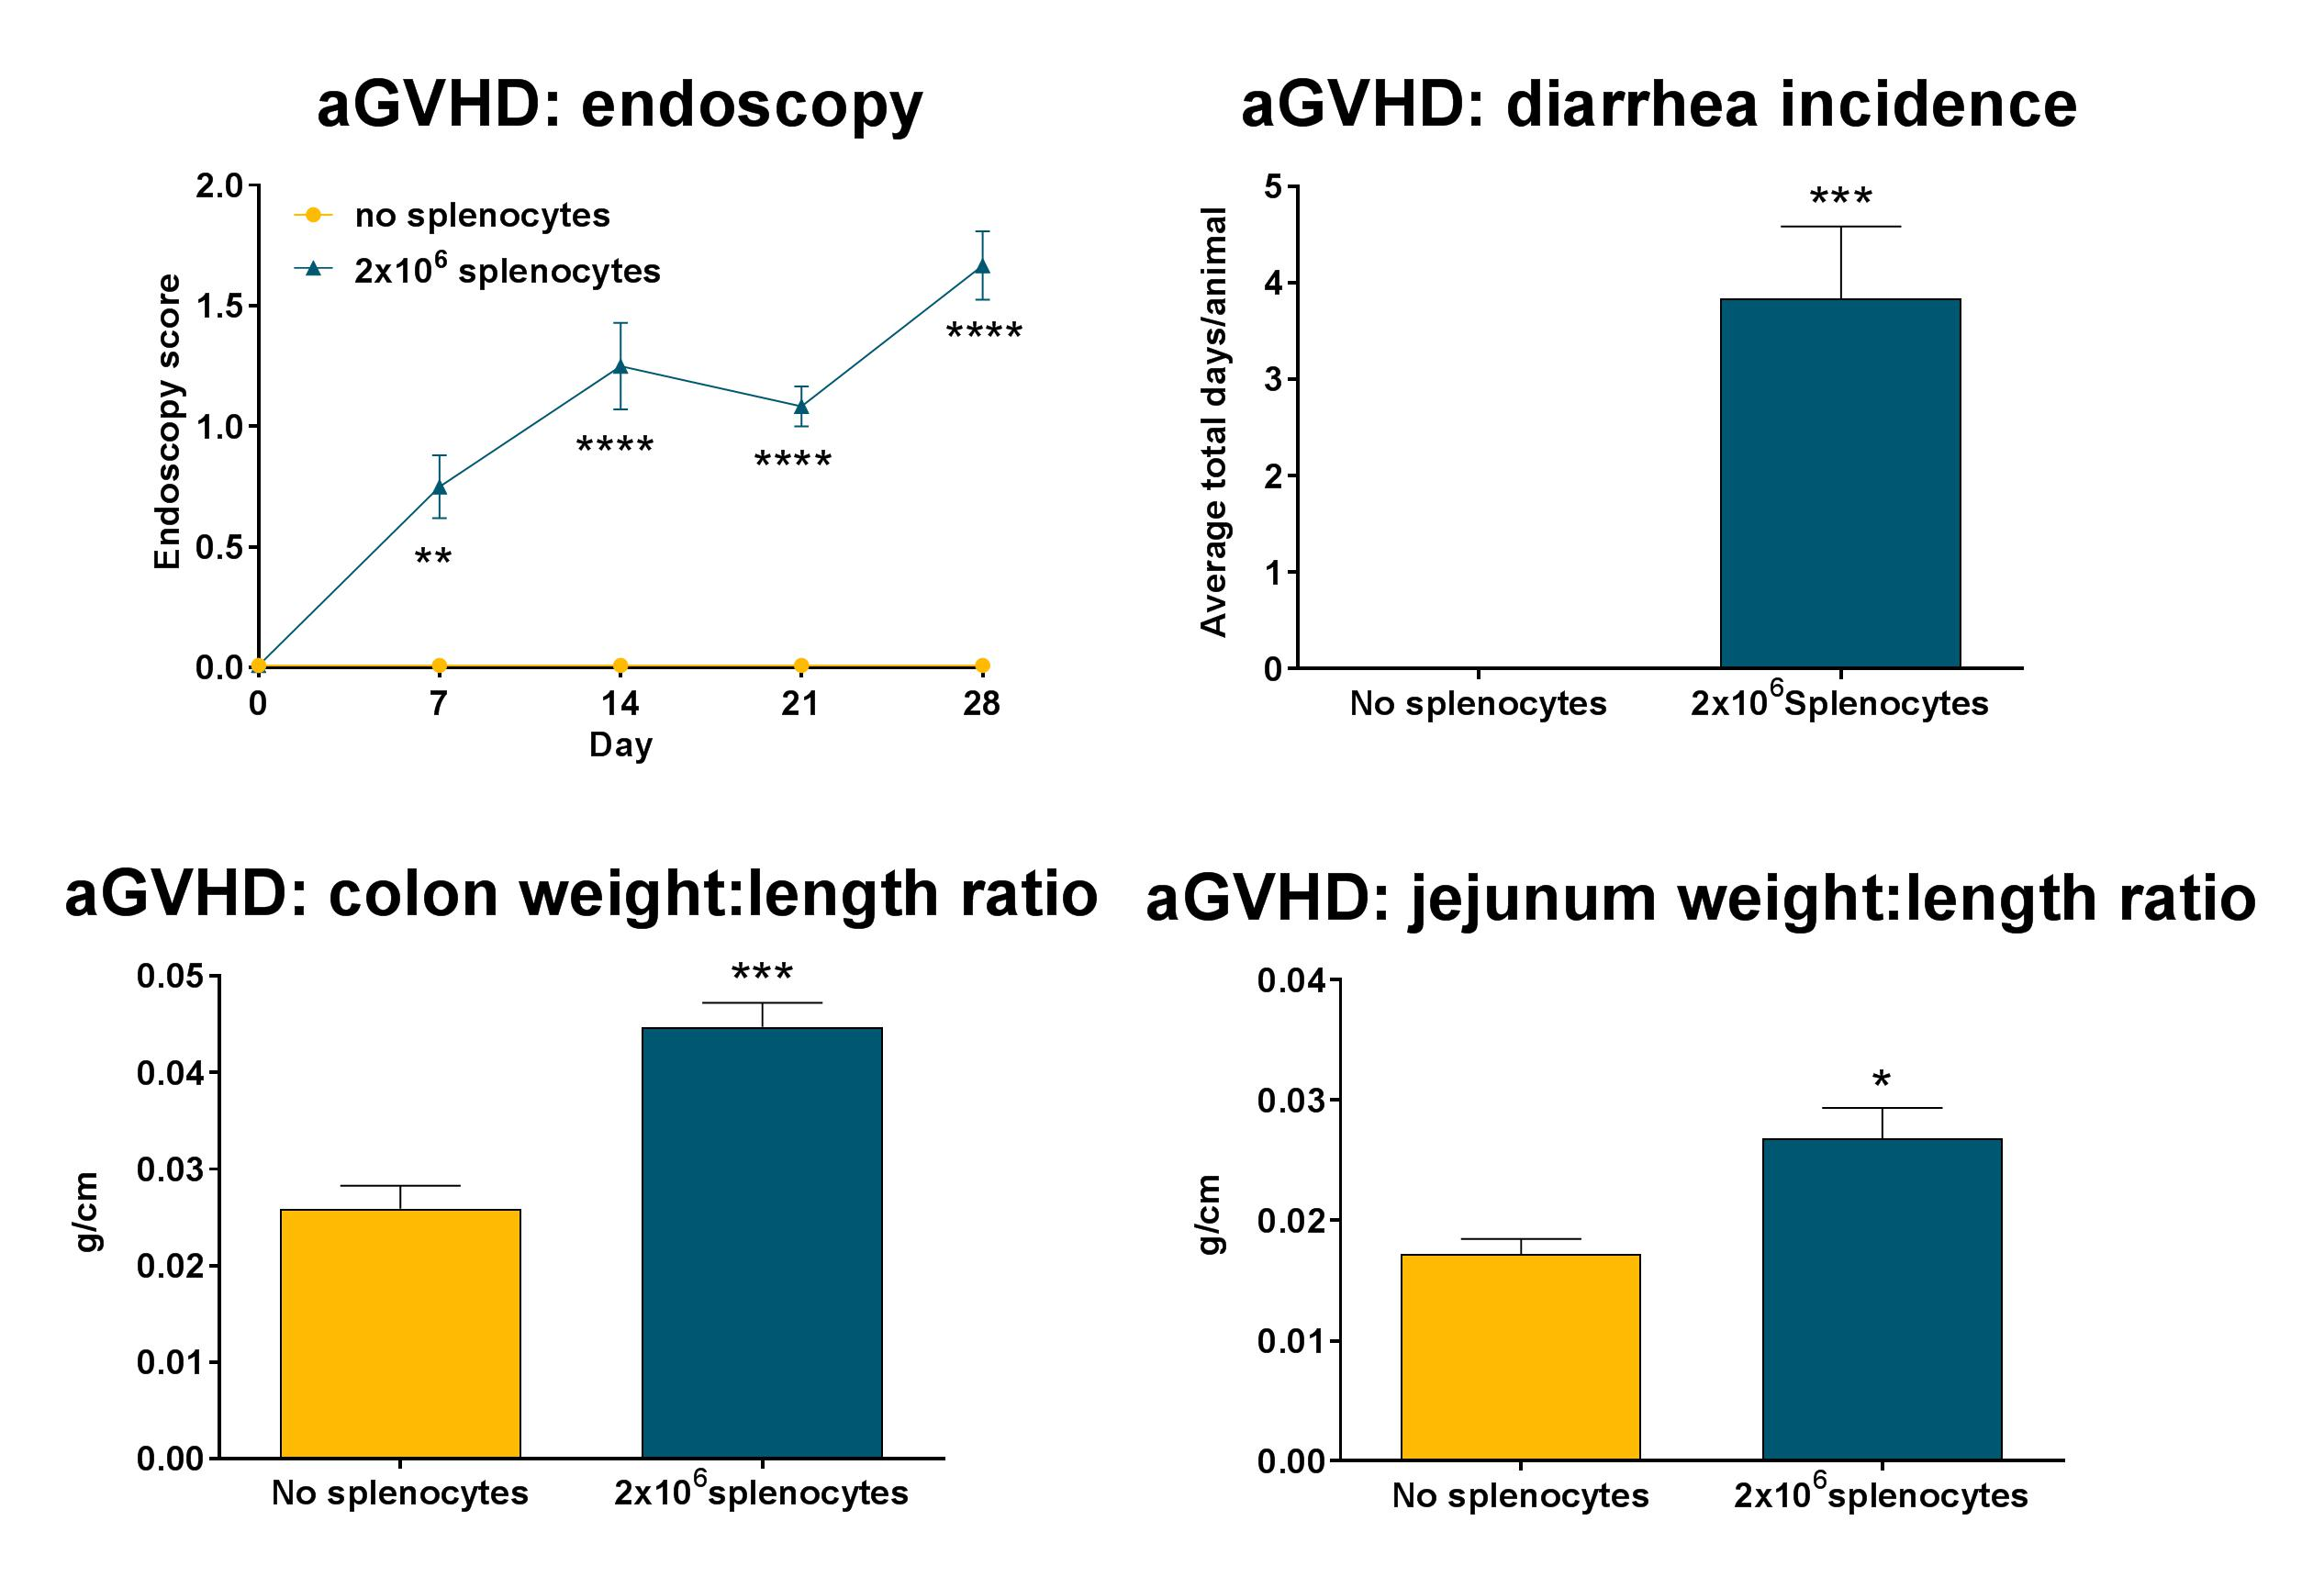 Recipient mice were pre-conditioned and transplanted with 1x107donor-derived CD3-depleted bone marrow cells supplemented with different numbers of splenocytes (see legend) on day 0. Presence or absence of diarrhea was assessed daily. Endoscopy was carried out on a weekly basis from day 0 to day 28. At sacrifice, the colon and jejunum were excised, flushed, weighed, and measured. Statistical evaluation by two-way ANOVA with Holm-Šidák's multiple comparison post-test (endoscopy scores), or Student's t-test (